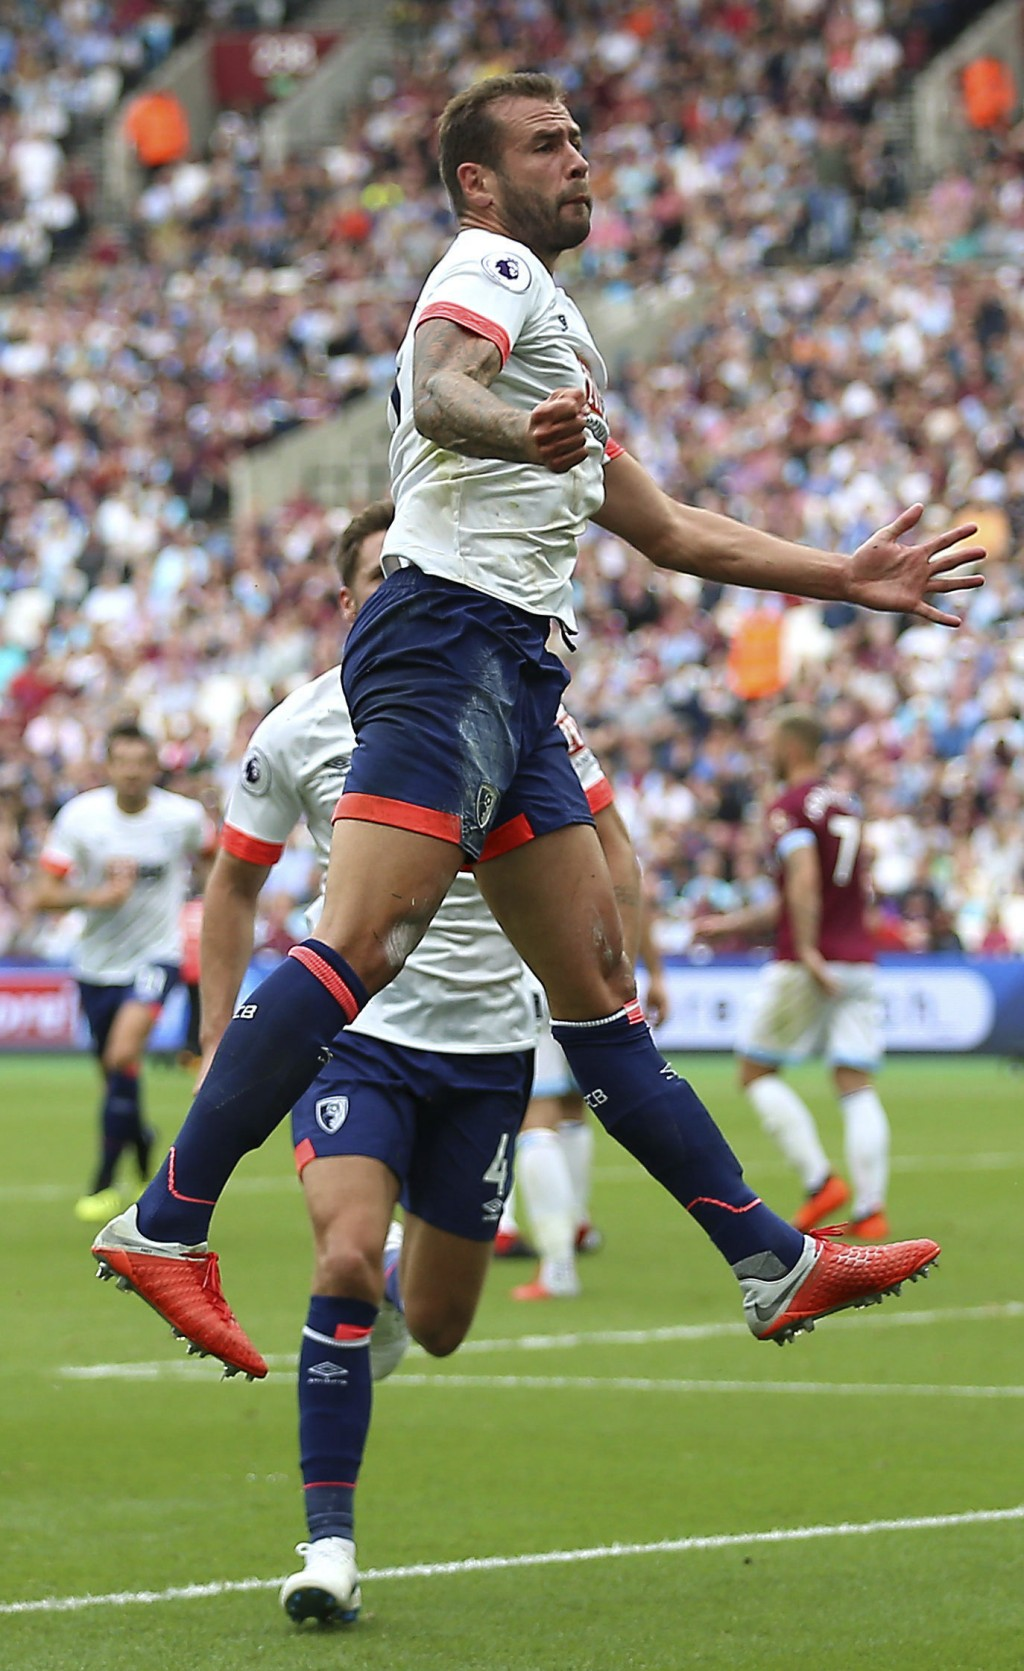 Bournemouth's Steve Cook celebrates scoring his side's second goal of the game against West Ham during their English Premier League soccer match at Lo...